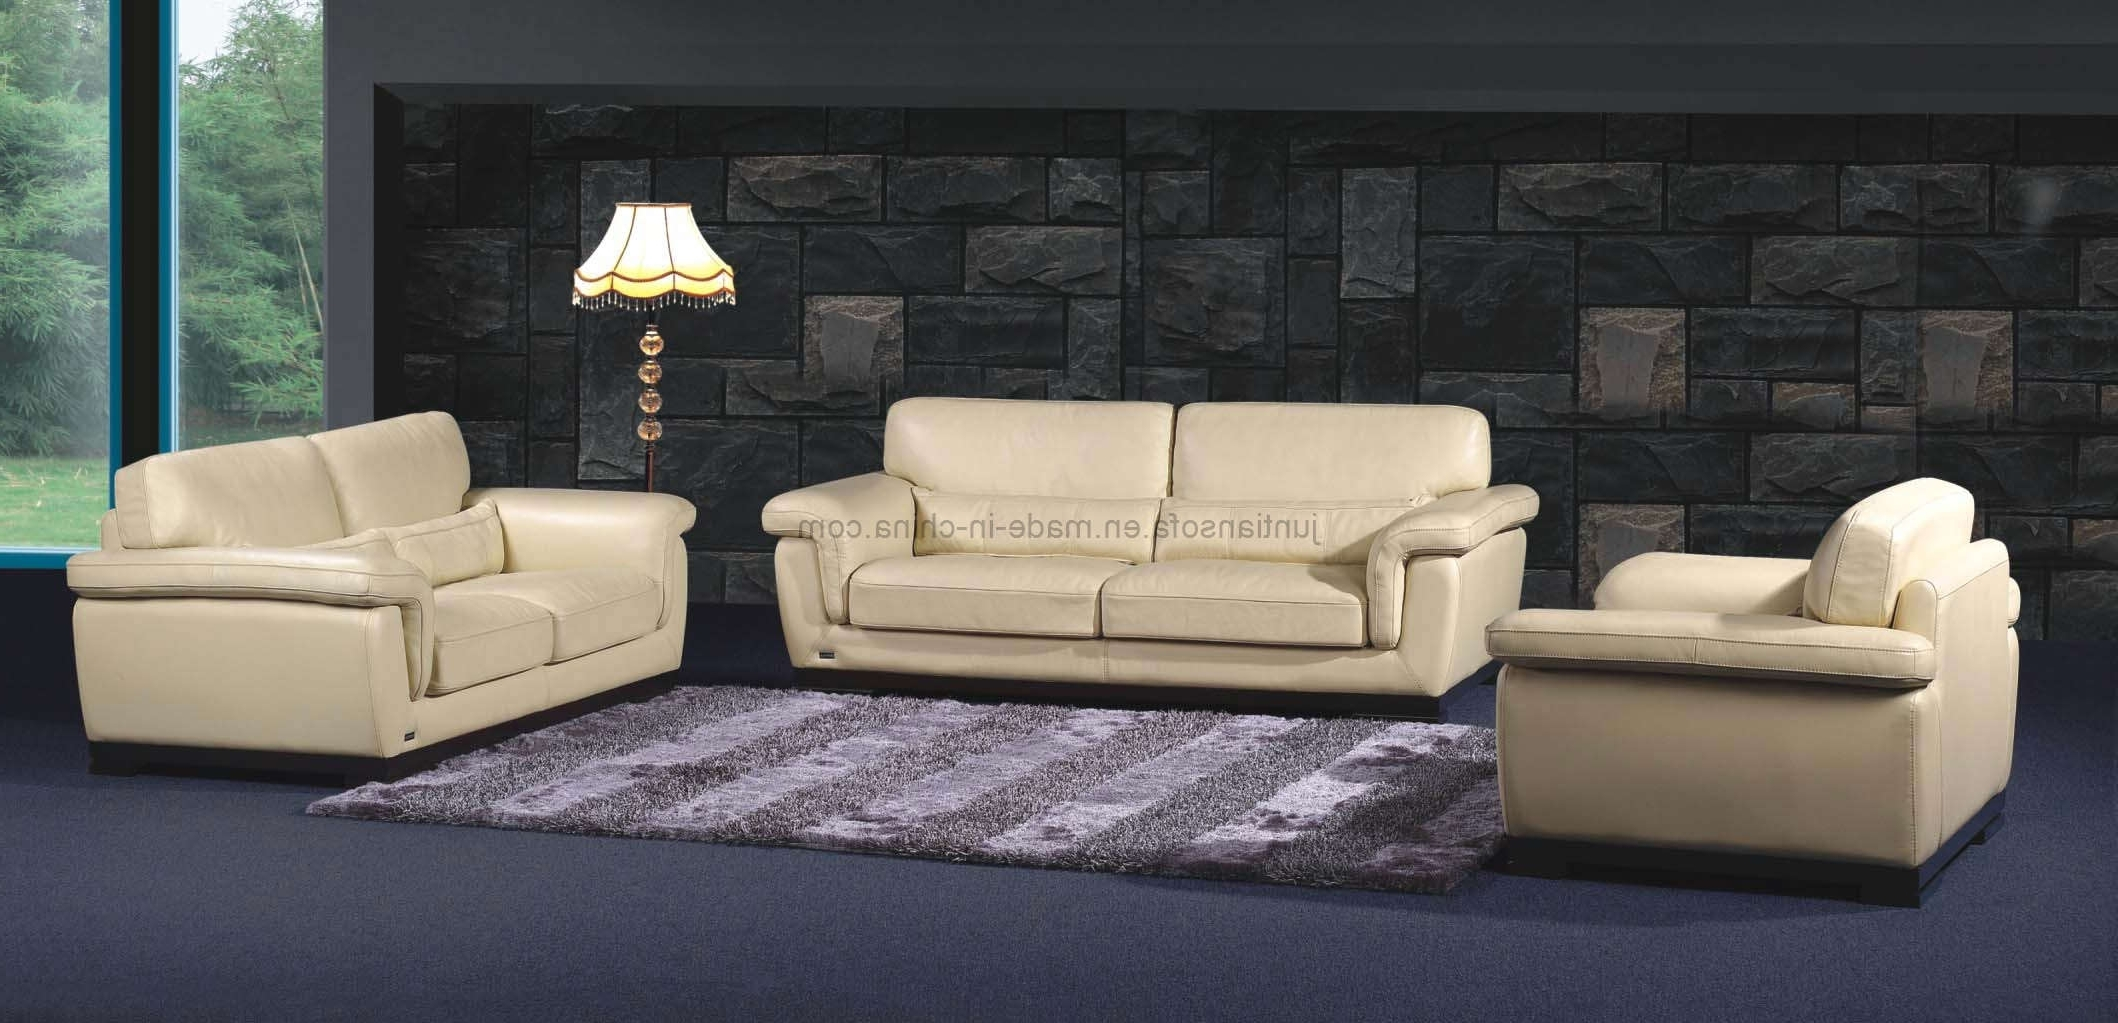 Lovely High Quality Sectional Sofa 30 For Sofa Room Ideas With Within Well Liked High Quality Sectional Sofas (View 12 of 20)